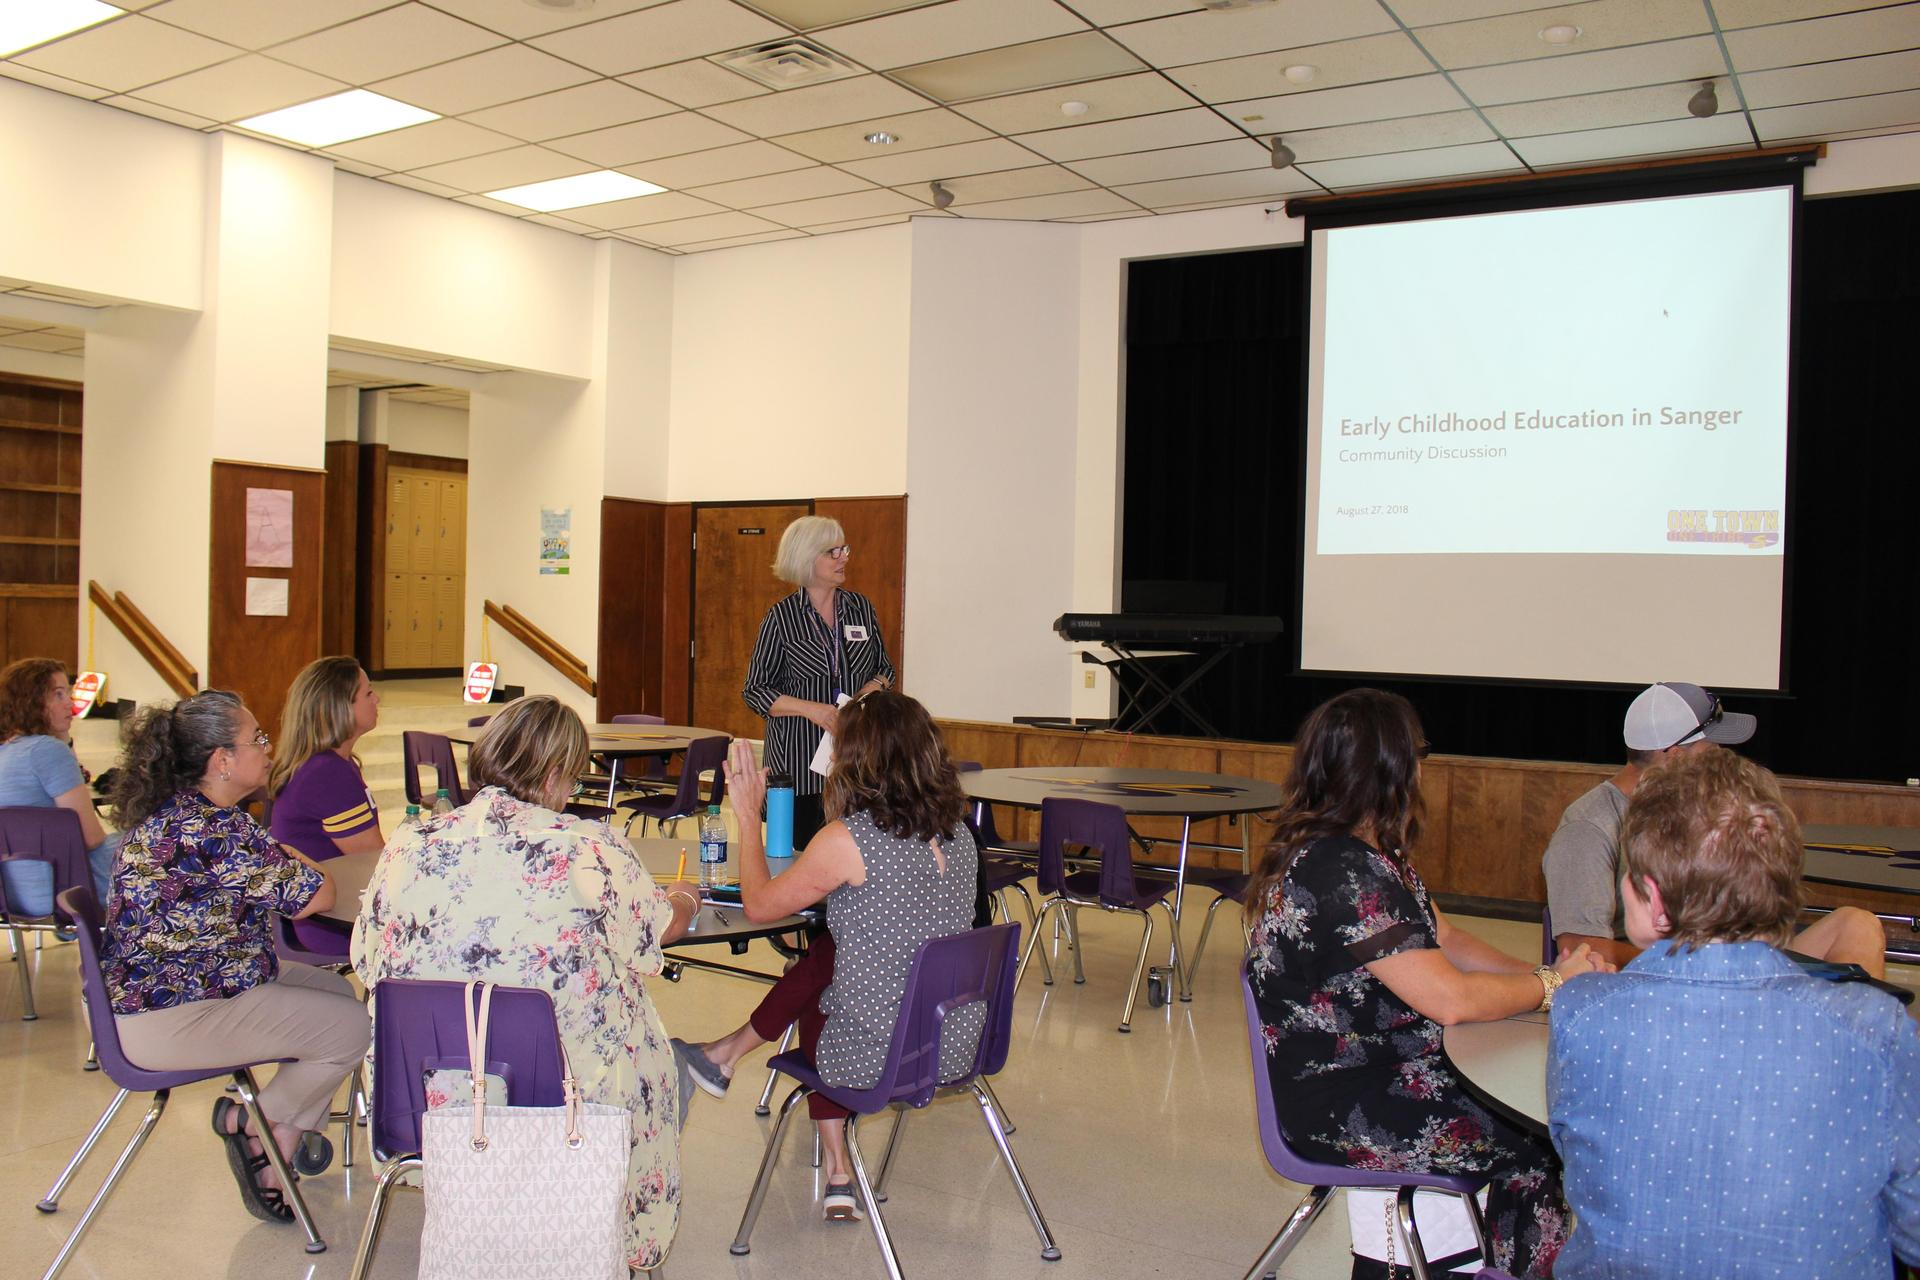 Debby Moore leads the discussion around the future of Pre K in Sanger